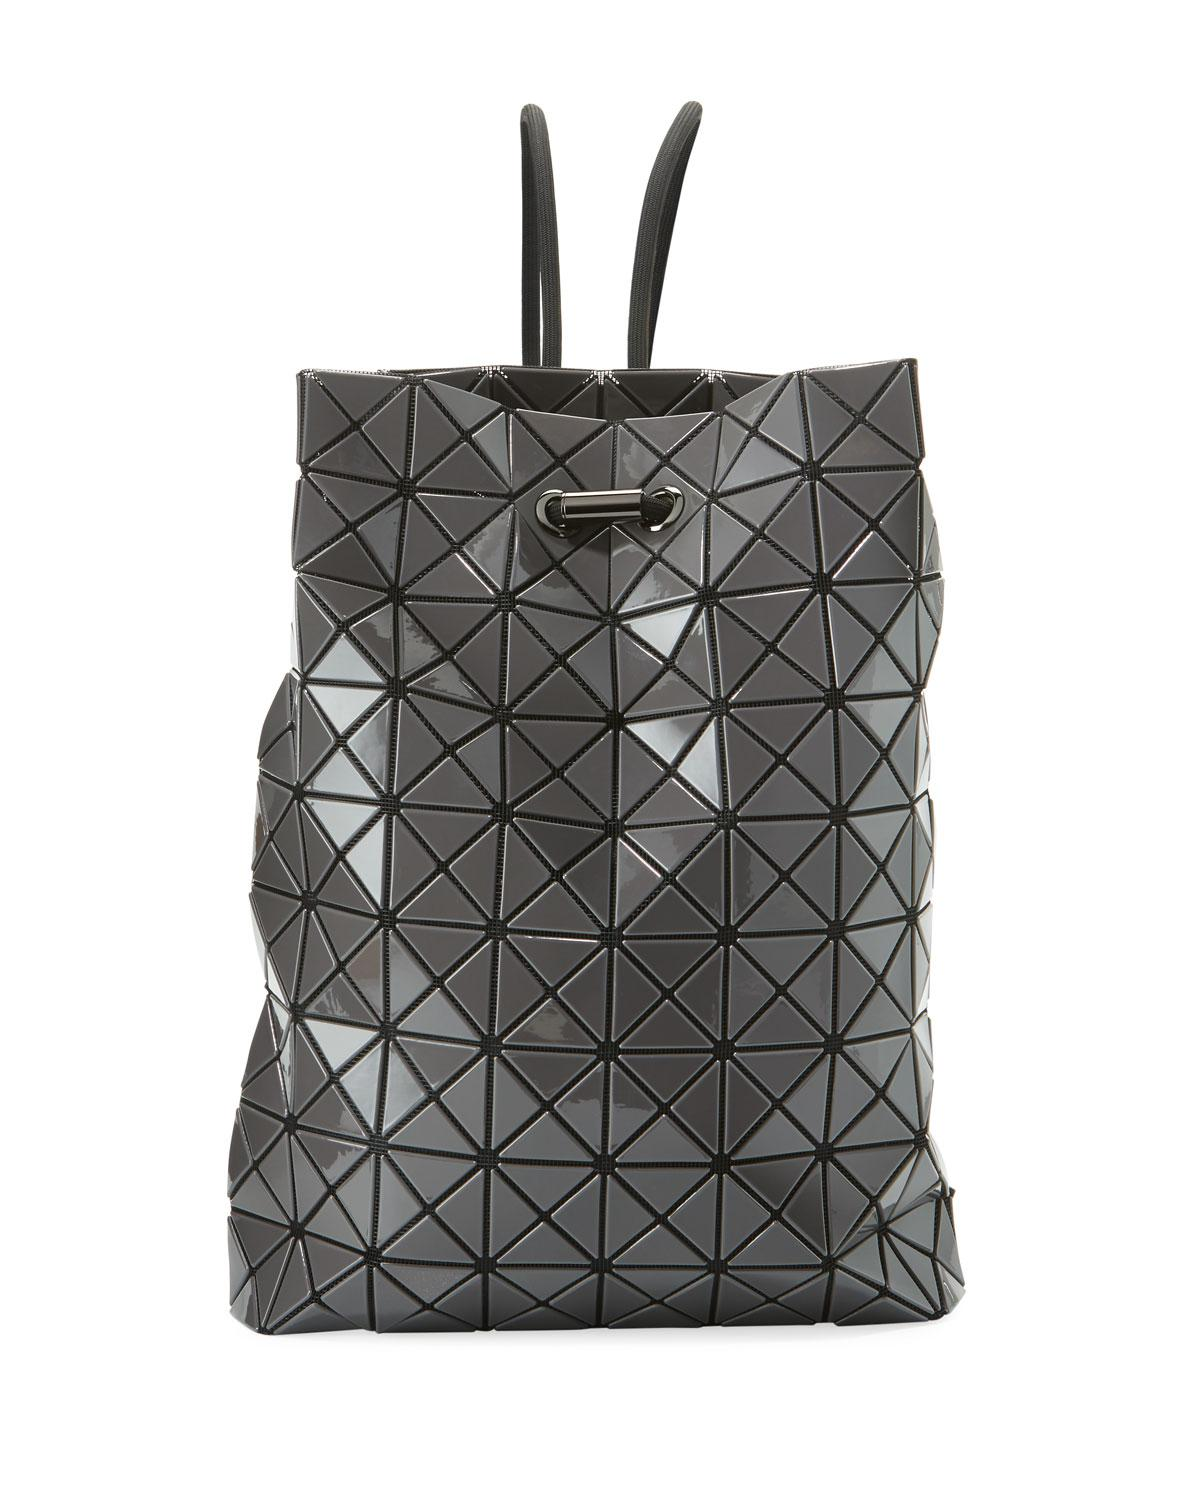 e7a0916398c lyst bao bao issey miyake planet shoulder bag in brown wholesale ...